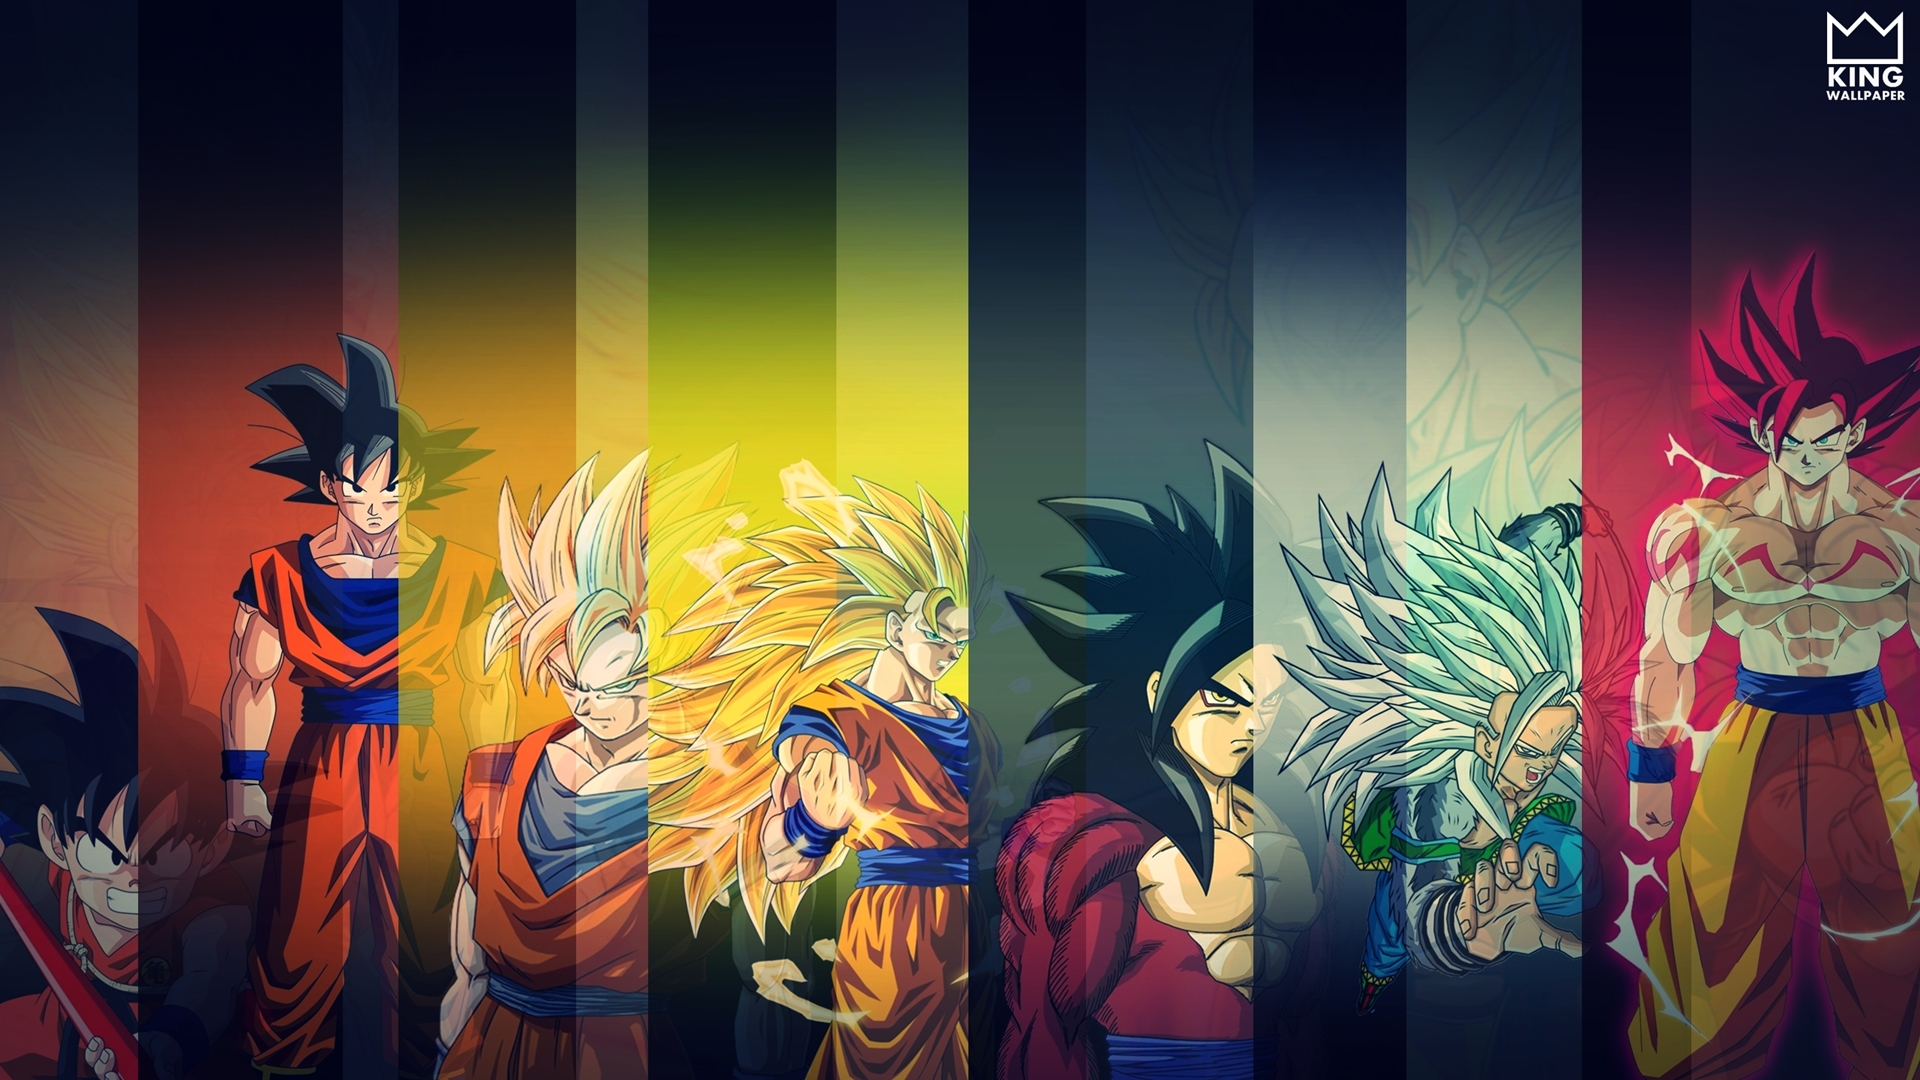 Best-Goku-hd-for-PC-Dragon-Ball-Z-wallpaper-wpc9001524